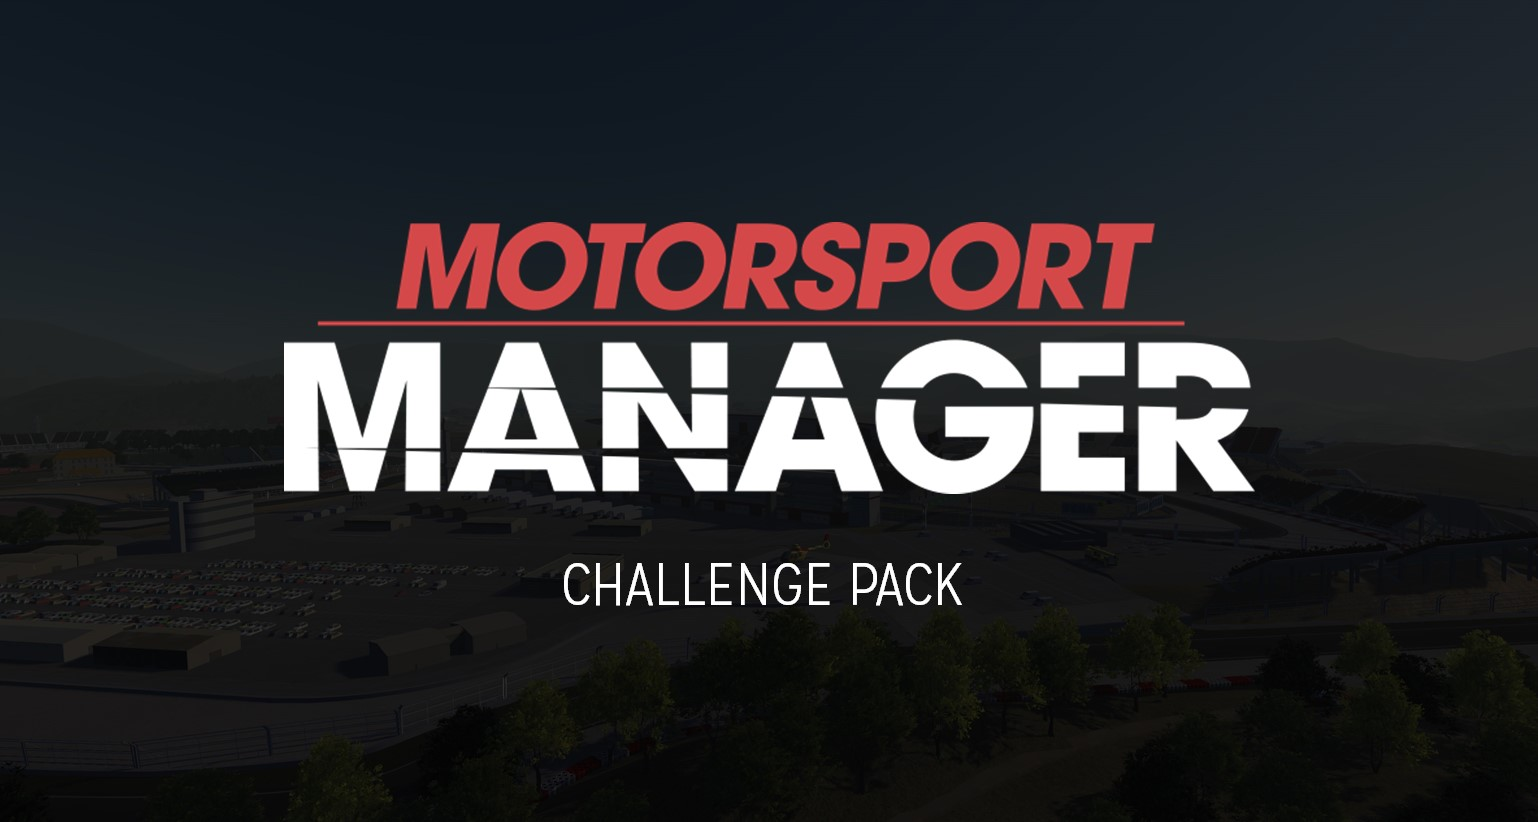 Free update and premium DLC coming to Motorsport Manager on 21st August